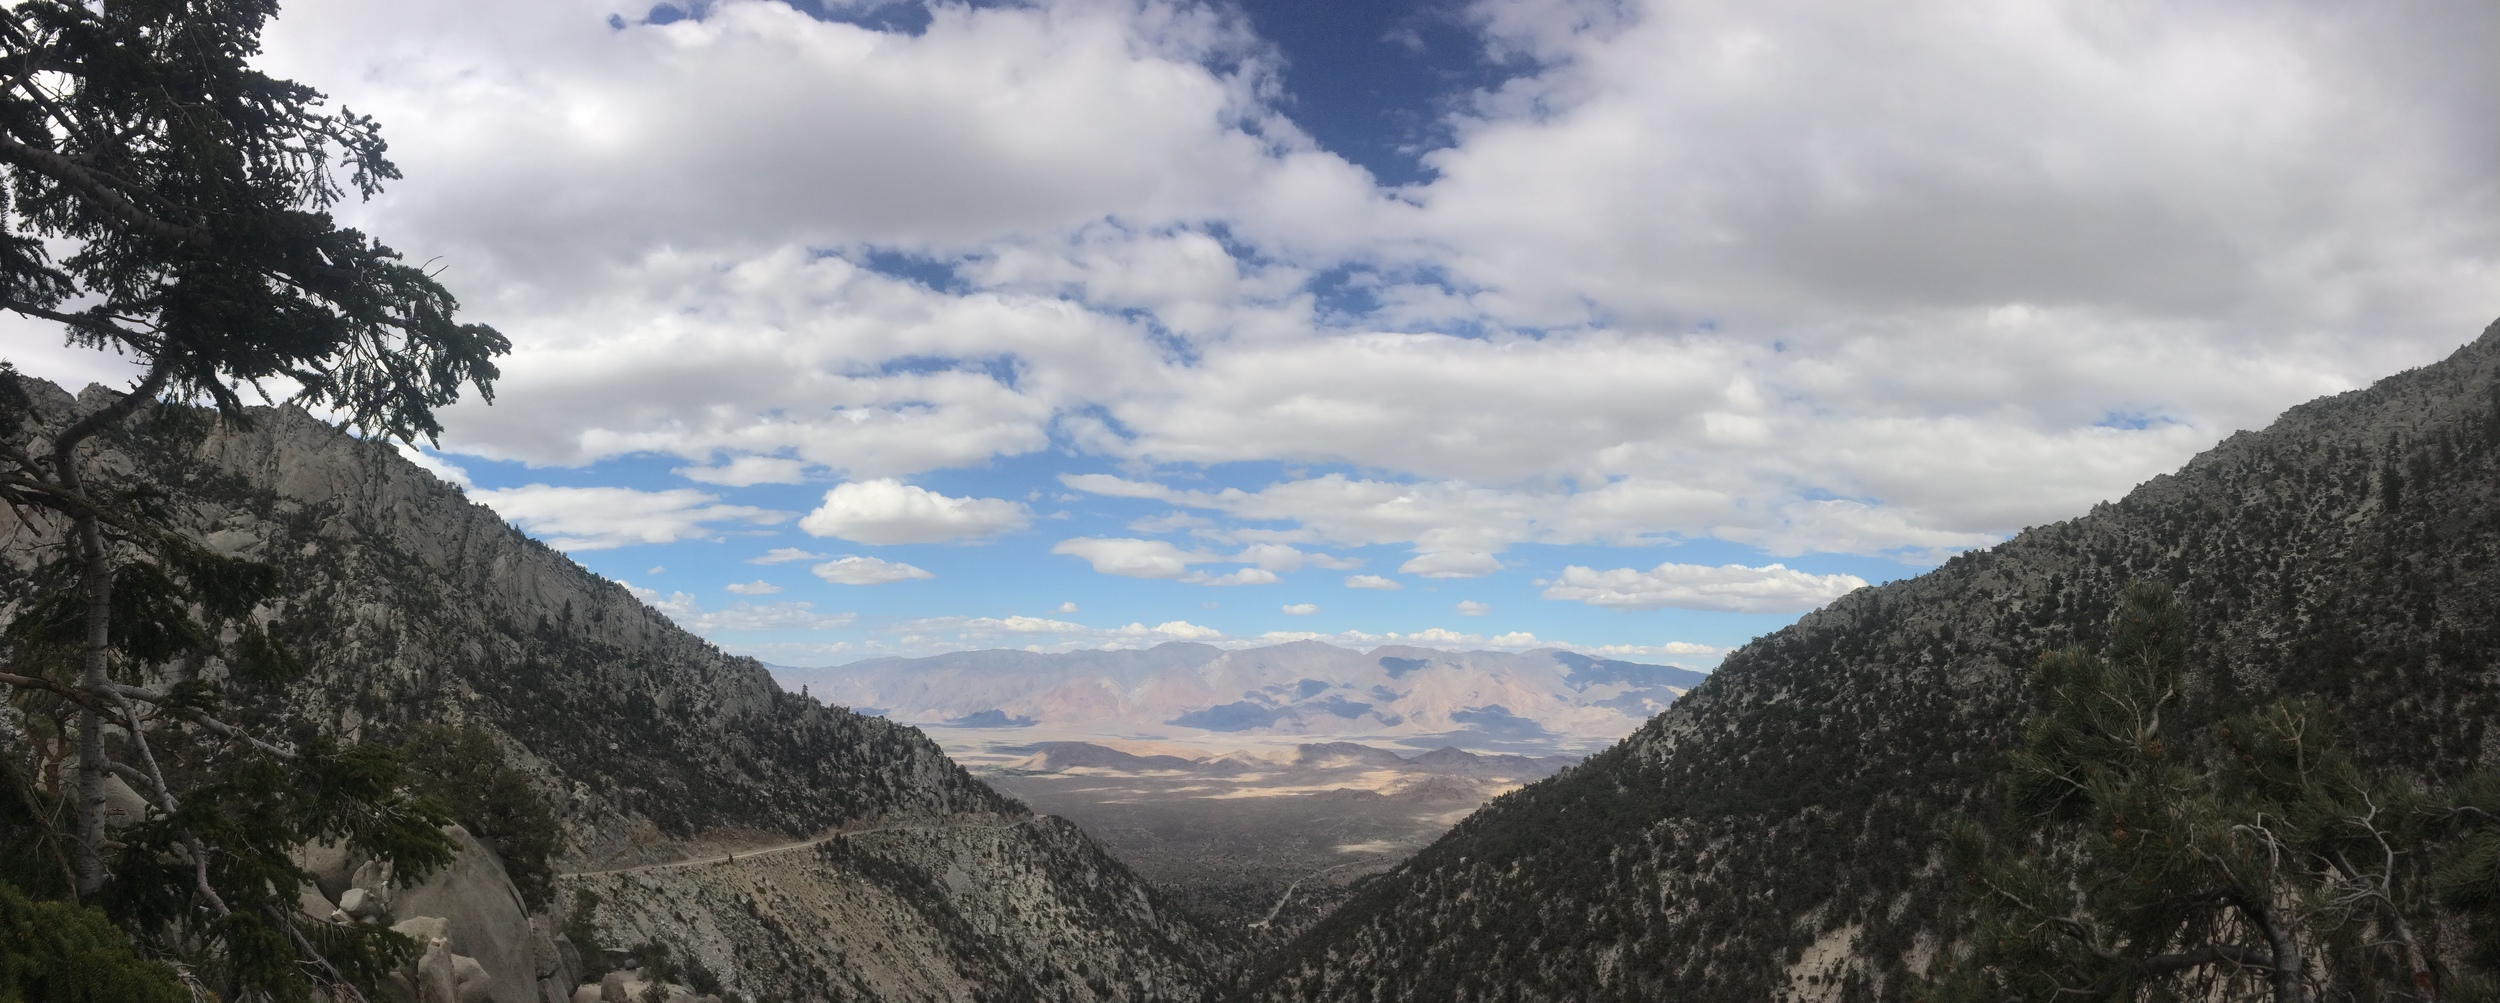 Looking back to the Owens Valley from the start of the Meysan Lake Trail, June 2015